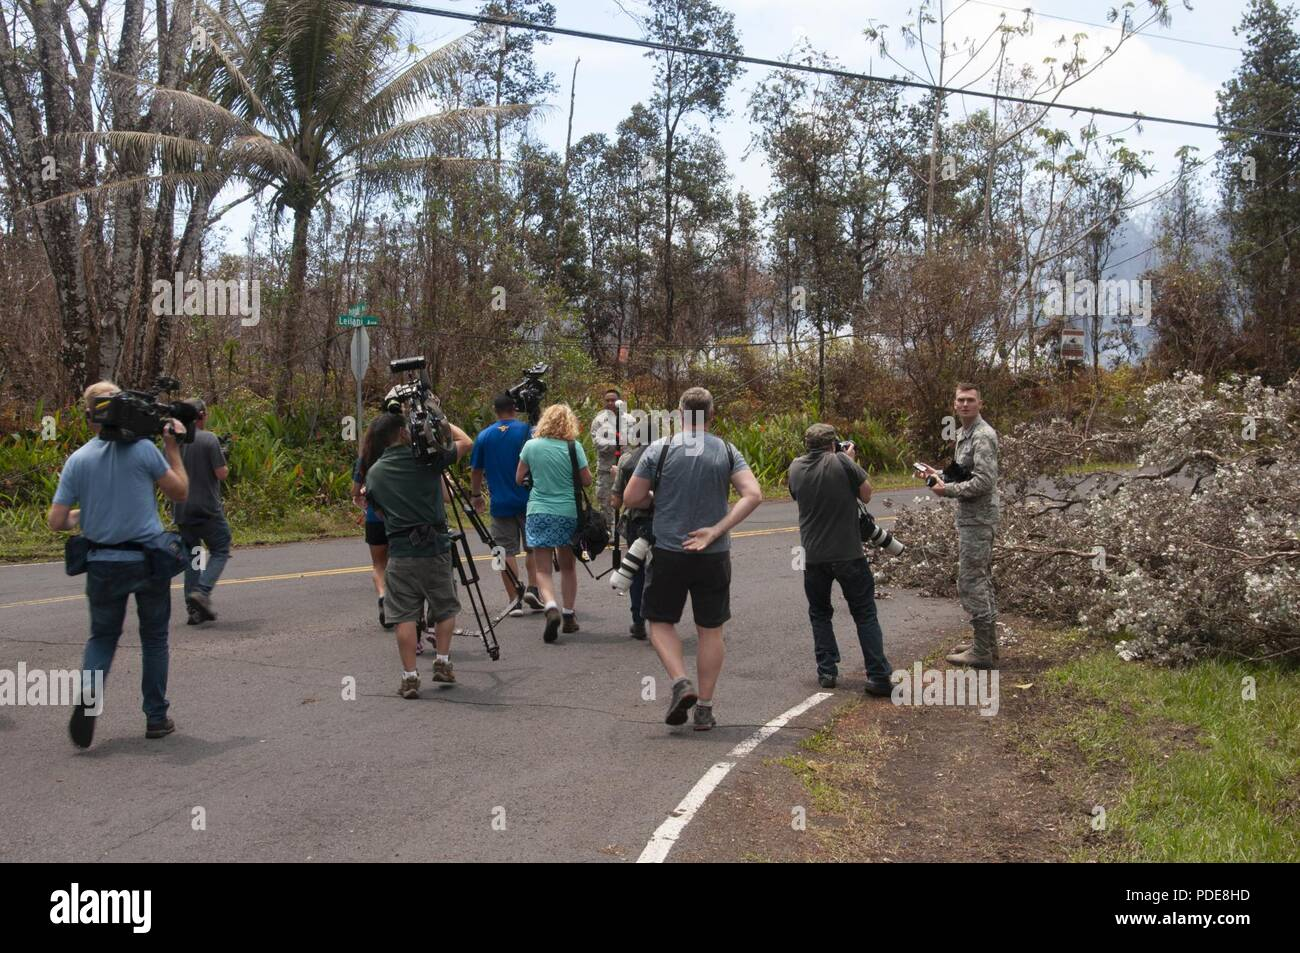 Task Force Hawaii National Guardsmen, escort news media through Leilani Estates May 16, 2018, on Hawaii Island. Reporters from local and national media outlets were escorted by the task force through damaged residential areas after the eruption of Kilauea volcano. - Stock Image